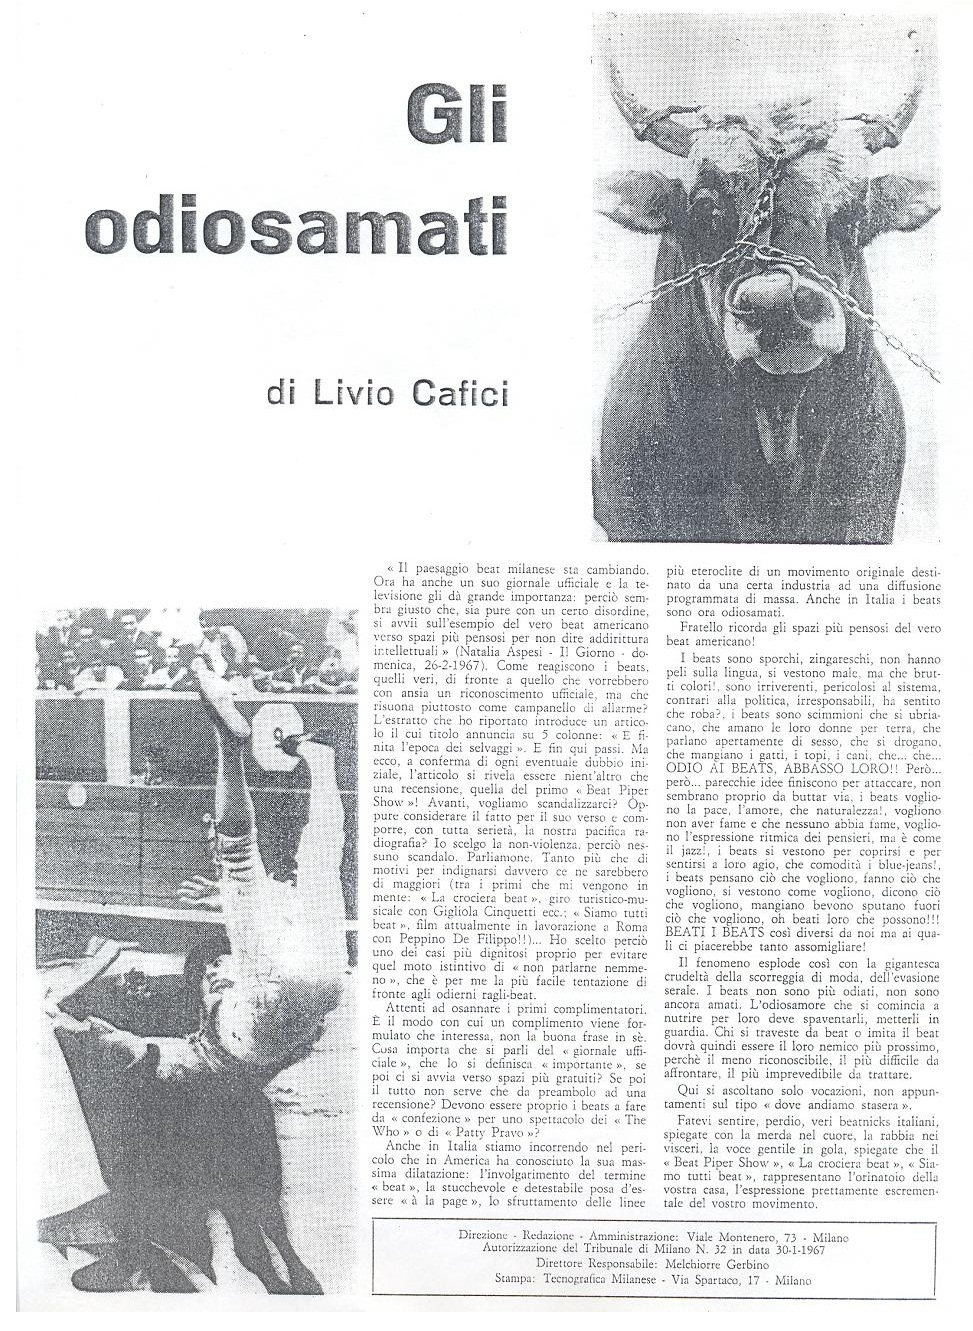 The fourth issue of Mondo Beat magazine - Edition 7,000 copies - Milan, March 15, 1967